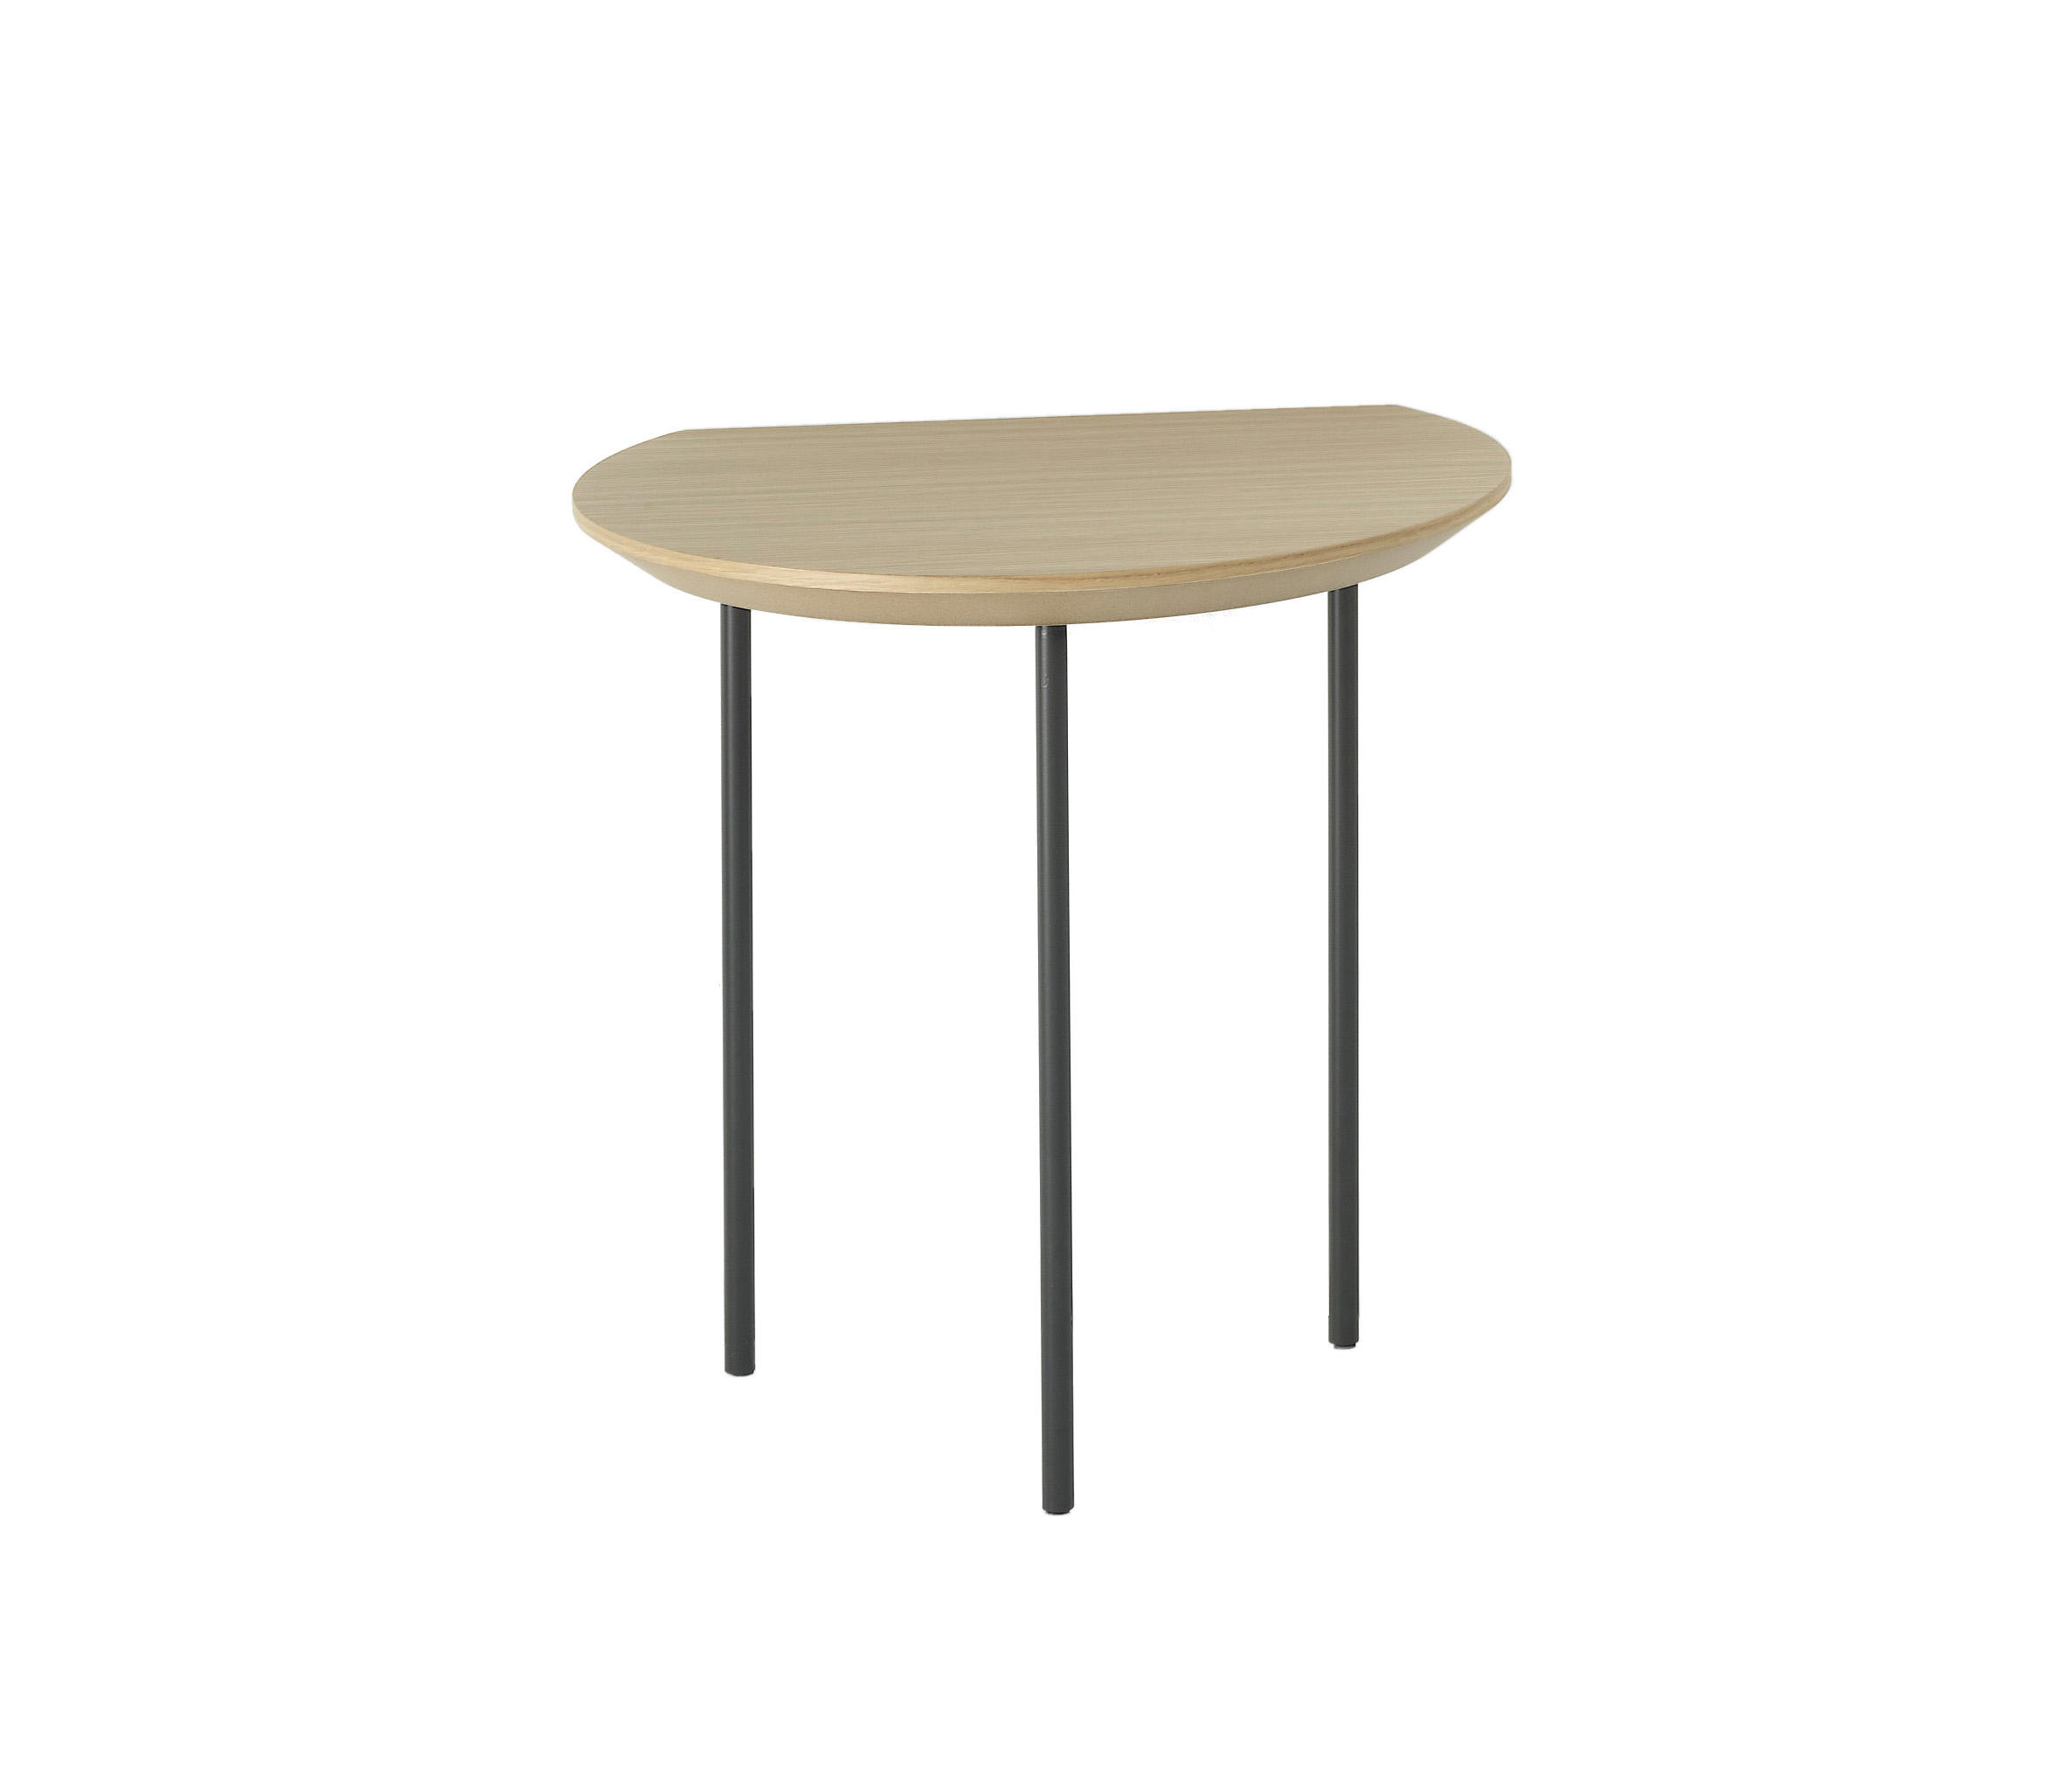 Cort Coffee Table By Kendo Mobiliario | Side Tables ...